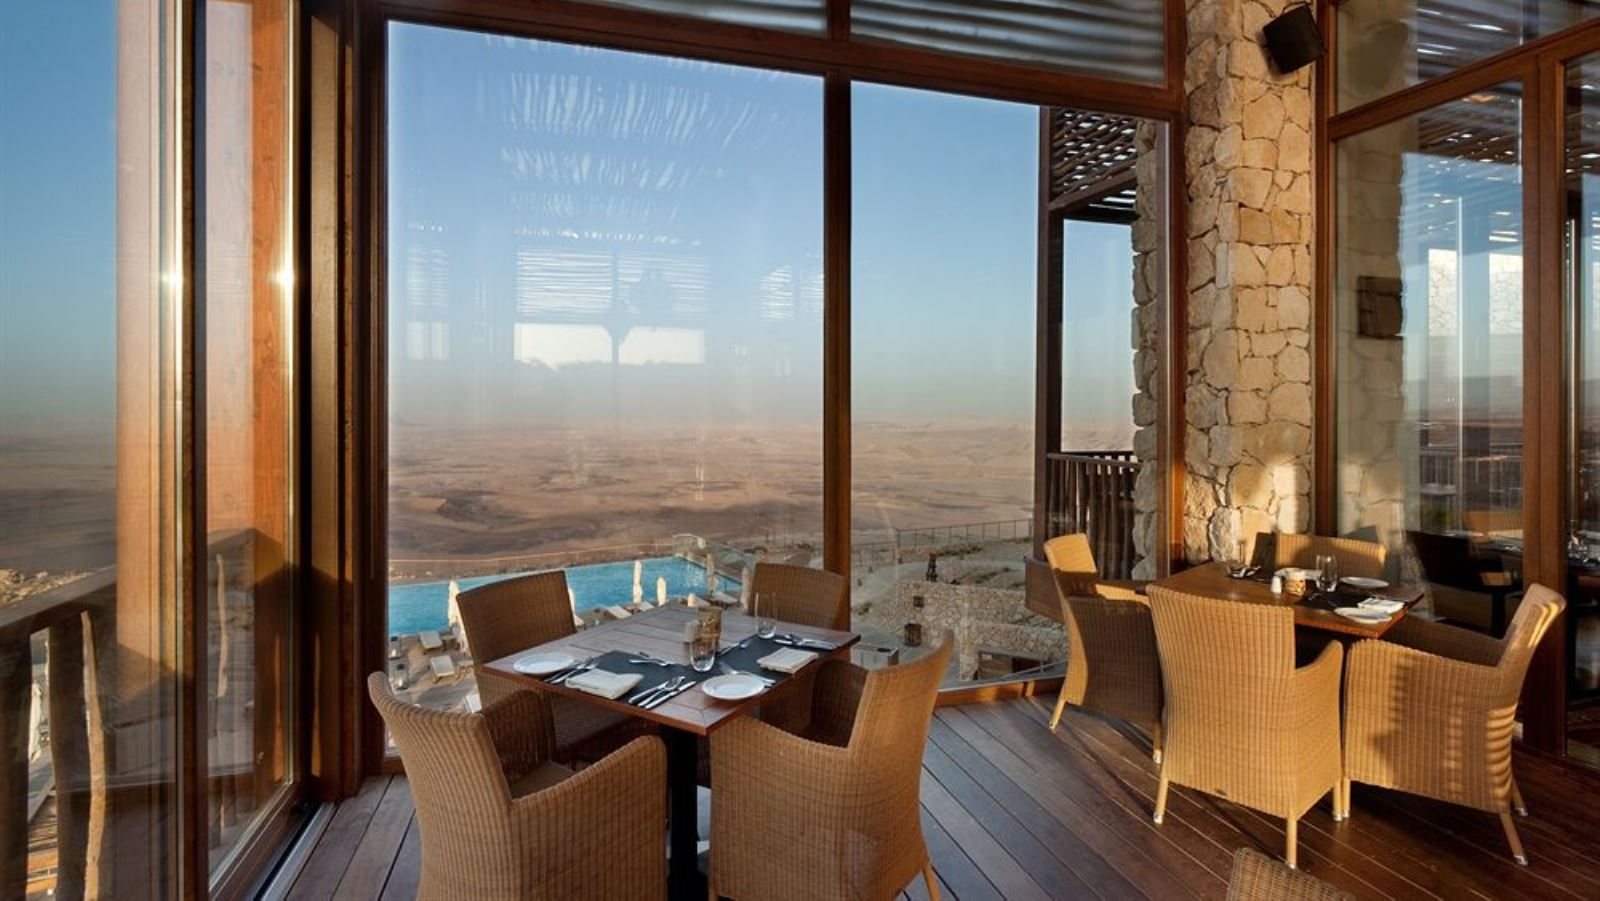 Dining at the Beresheet Hotel in Mitzpeh Ramon overlooking the Ramon Crater. Photo: courtesy